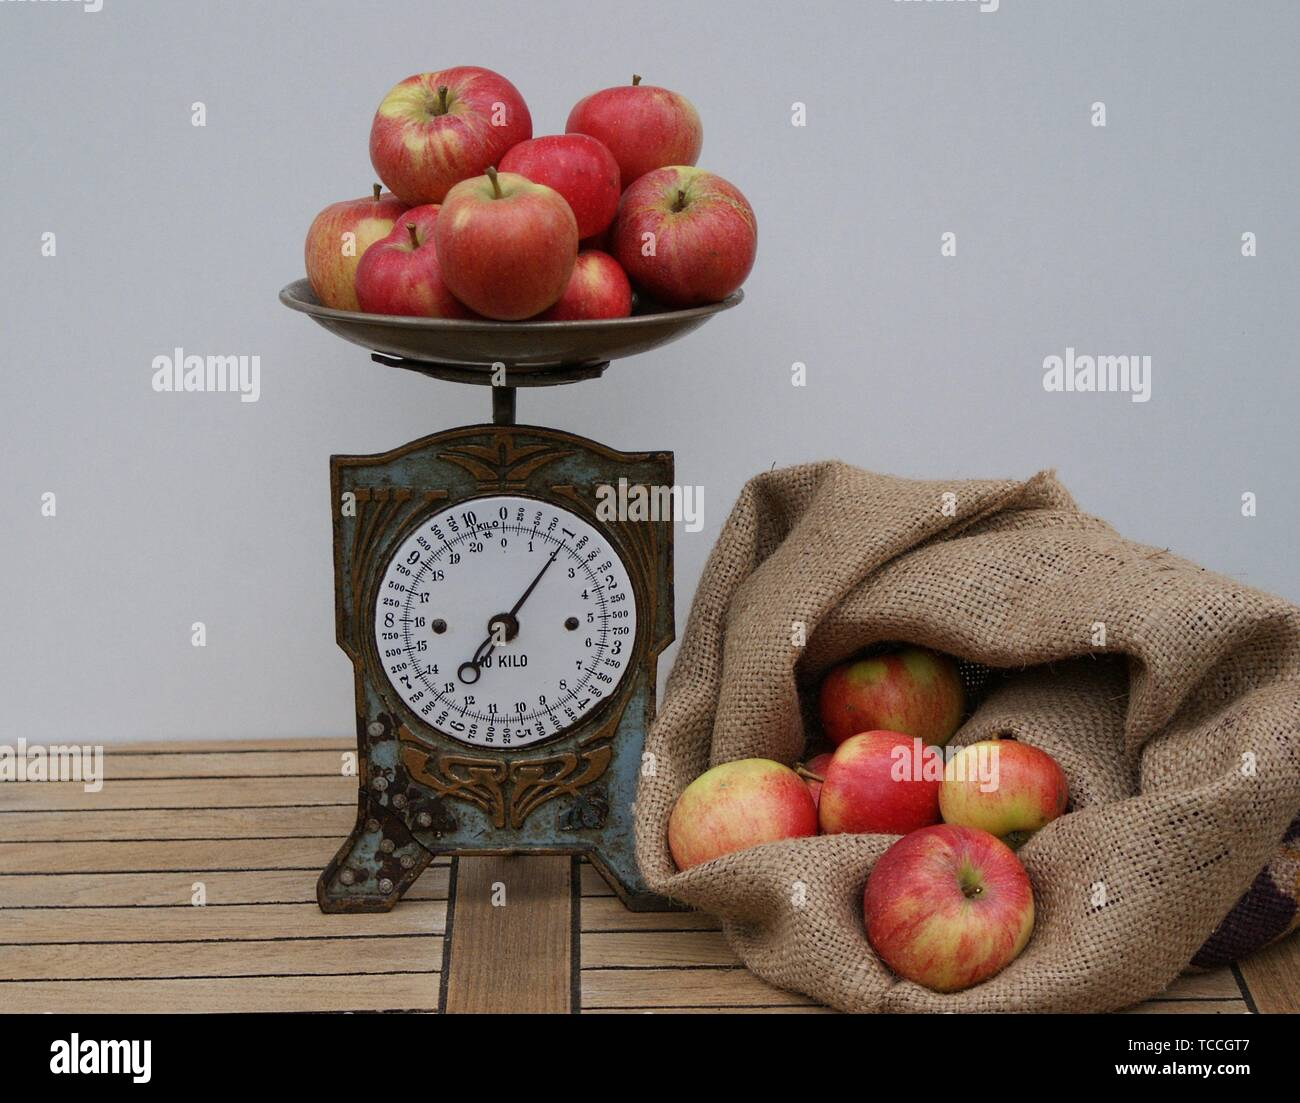 On wooden background the nostalgic kitchen scale with dial next to a bag filled with apples - Stock Image